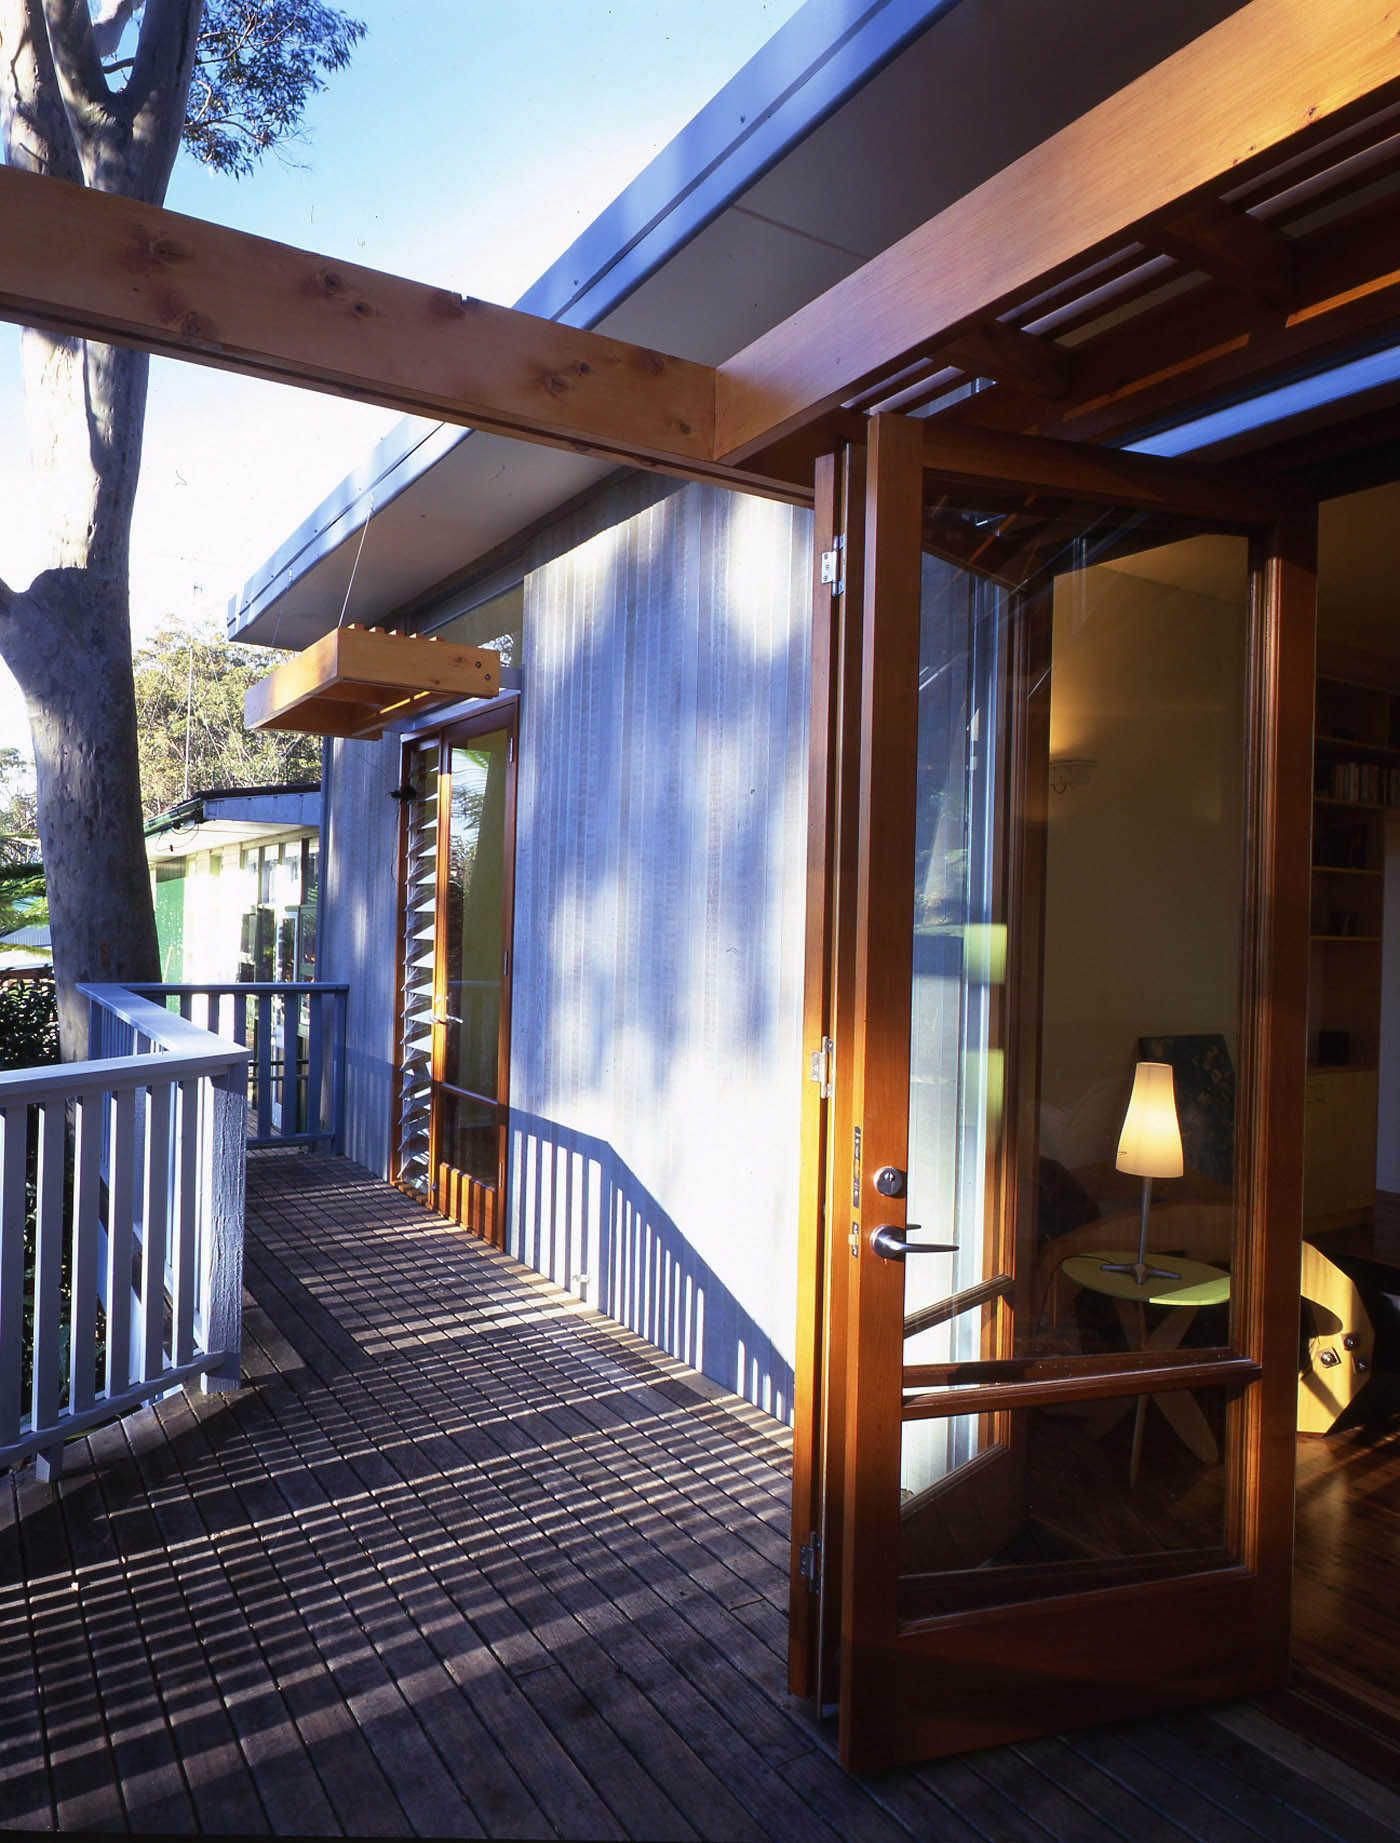 Avalon Beach House by Sydney award winning residential architecture firm Sam Crawford Architects. Dappled light from surrounding trees on timber deck and wall.